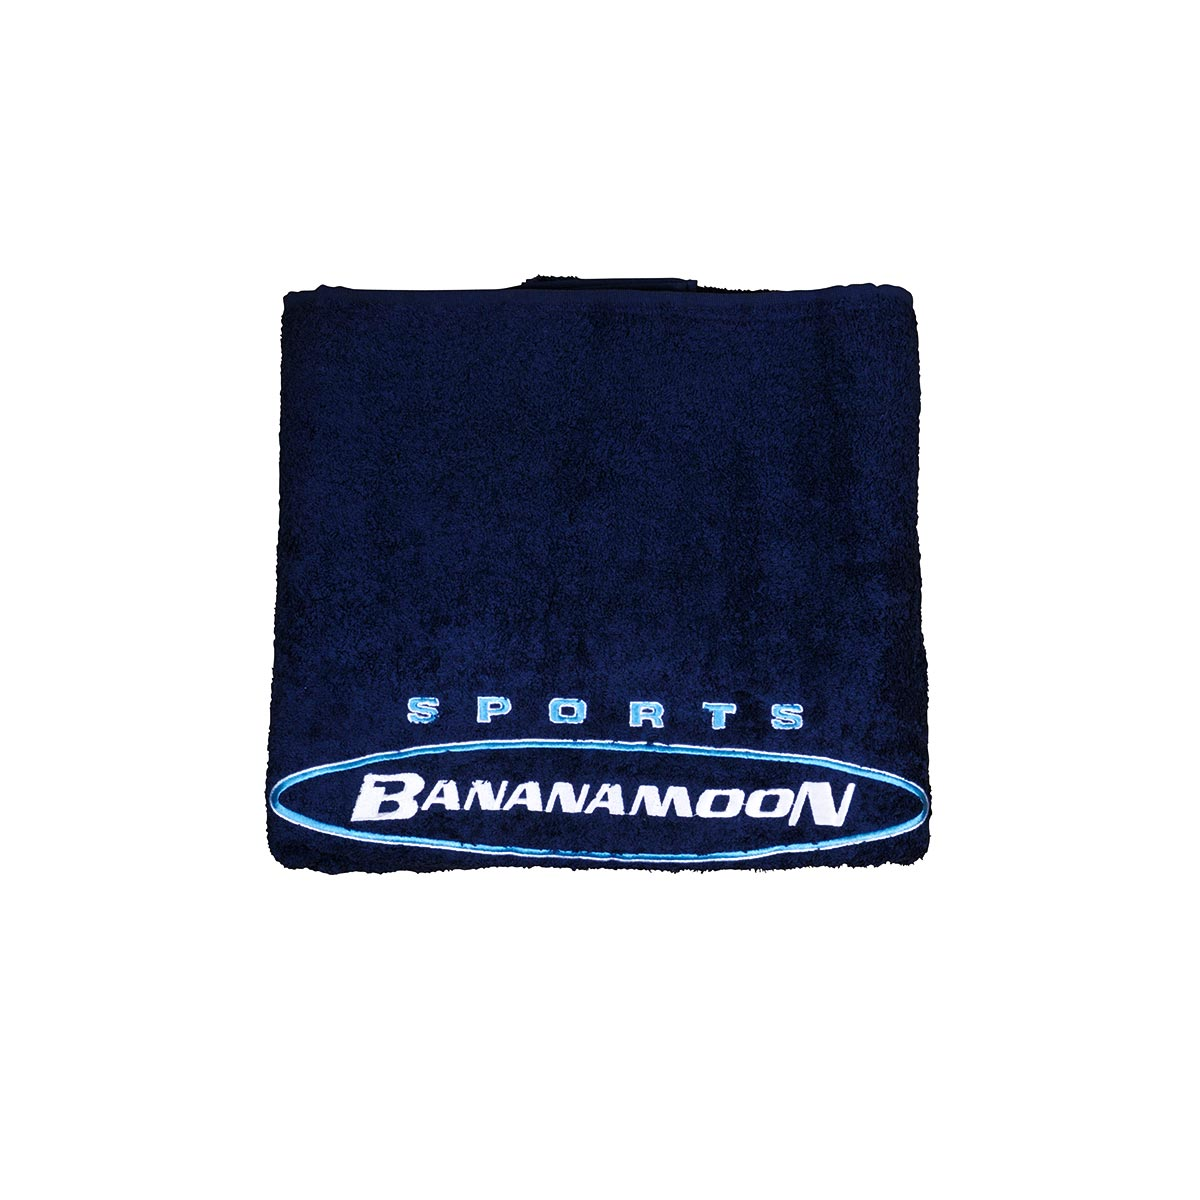 Strandtuch Plain Towely in Marineblau